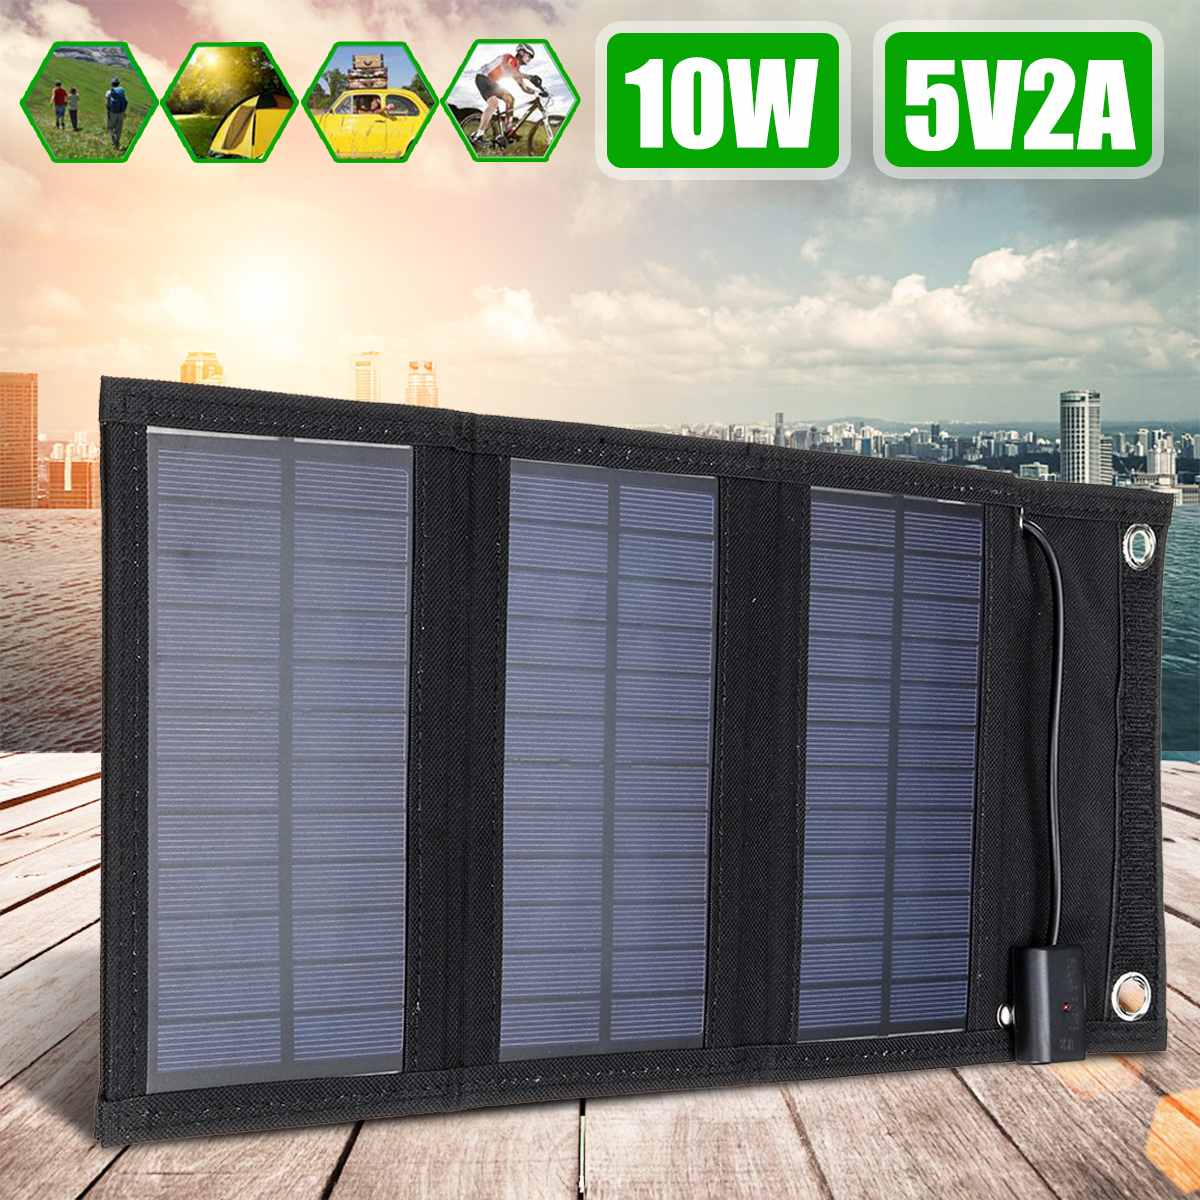 10W <font><b>5V</b></font> <font><b>2A</b></font> <font><b>Solar</b></font> <font><b>Panel</b></font> Charger Folding Foldable Waterproof <font><b>Solar</b></font> <font><b>Panel</b></font> Power Charger Mobile Power Bank for Phone Battery USB Port image